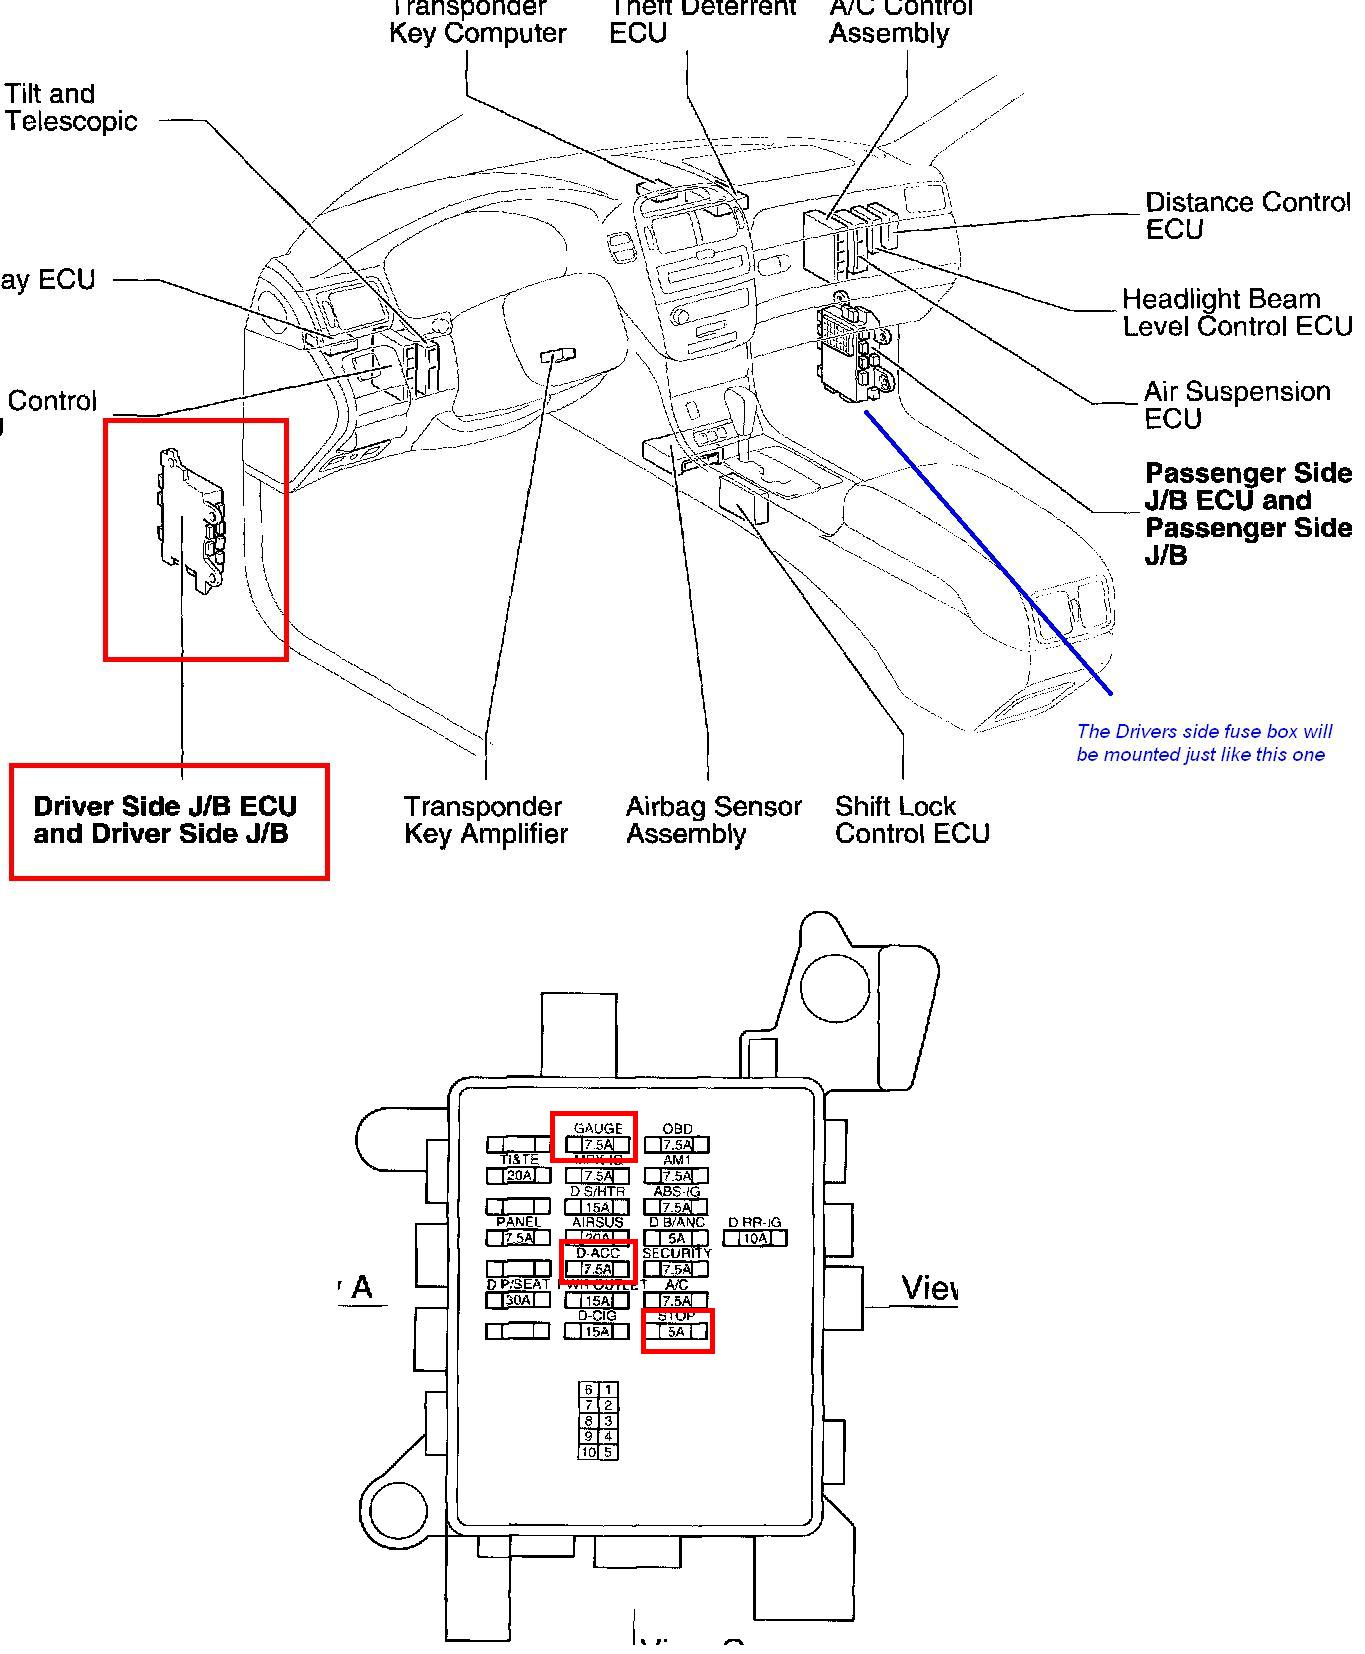 lexus rx330 fuse box diagram  lexus  free engine image for